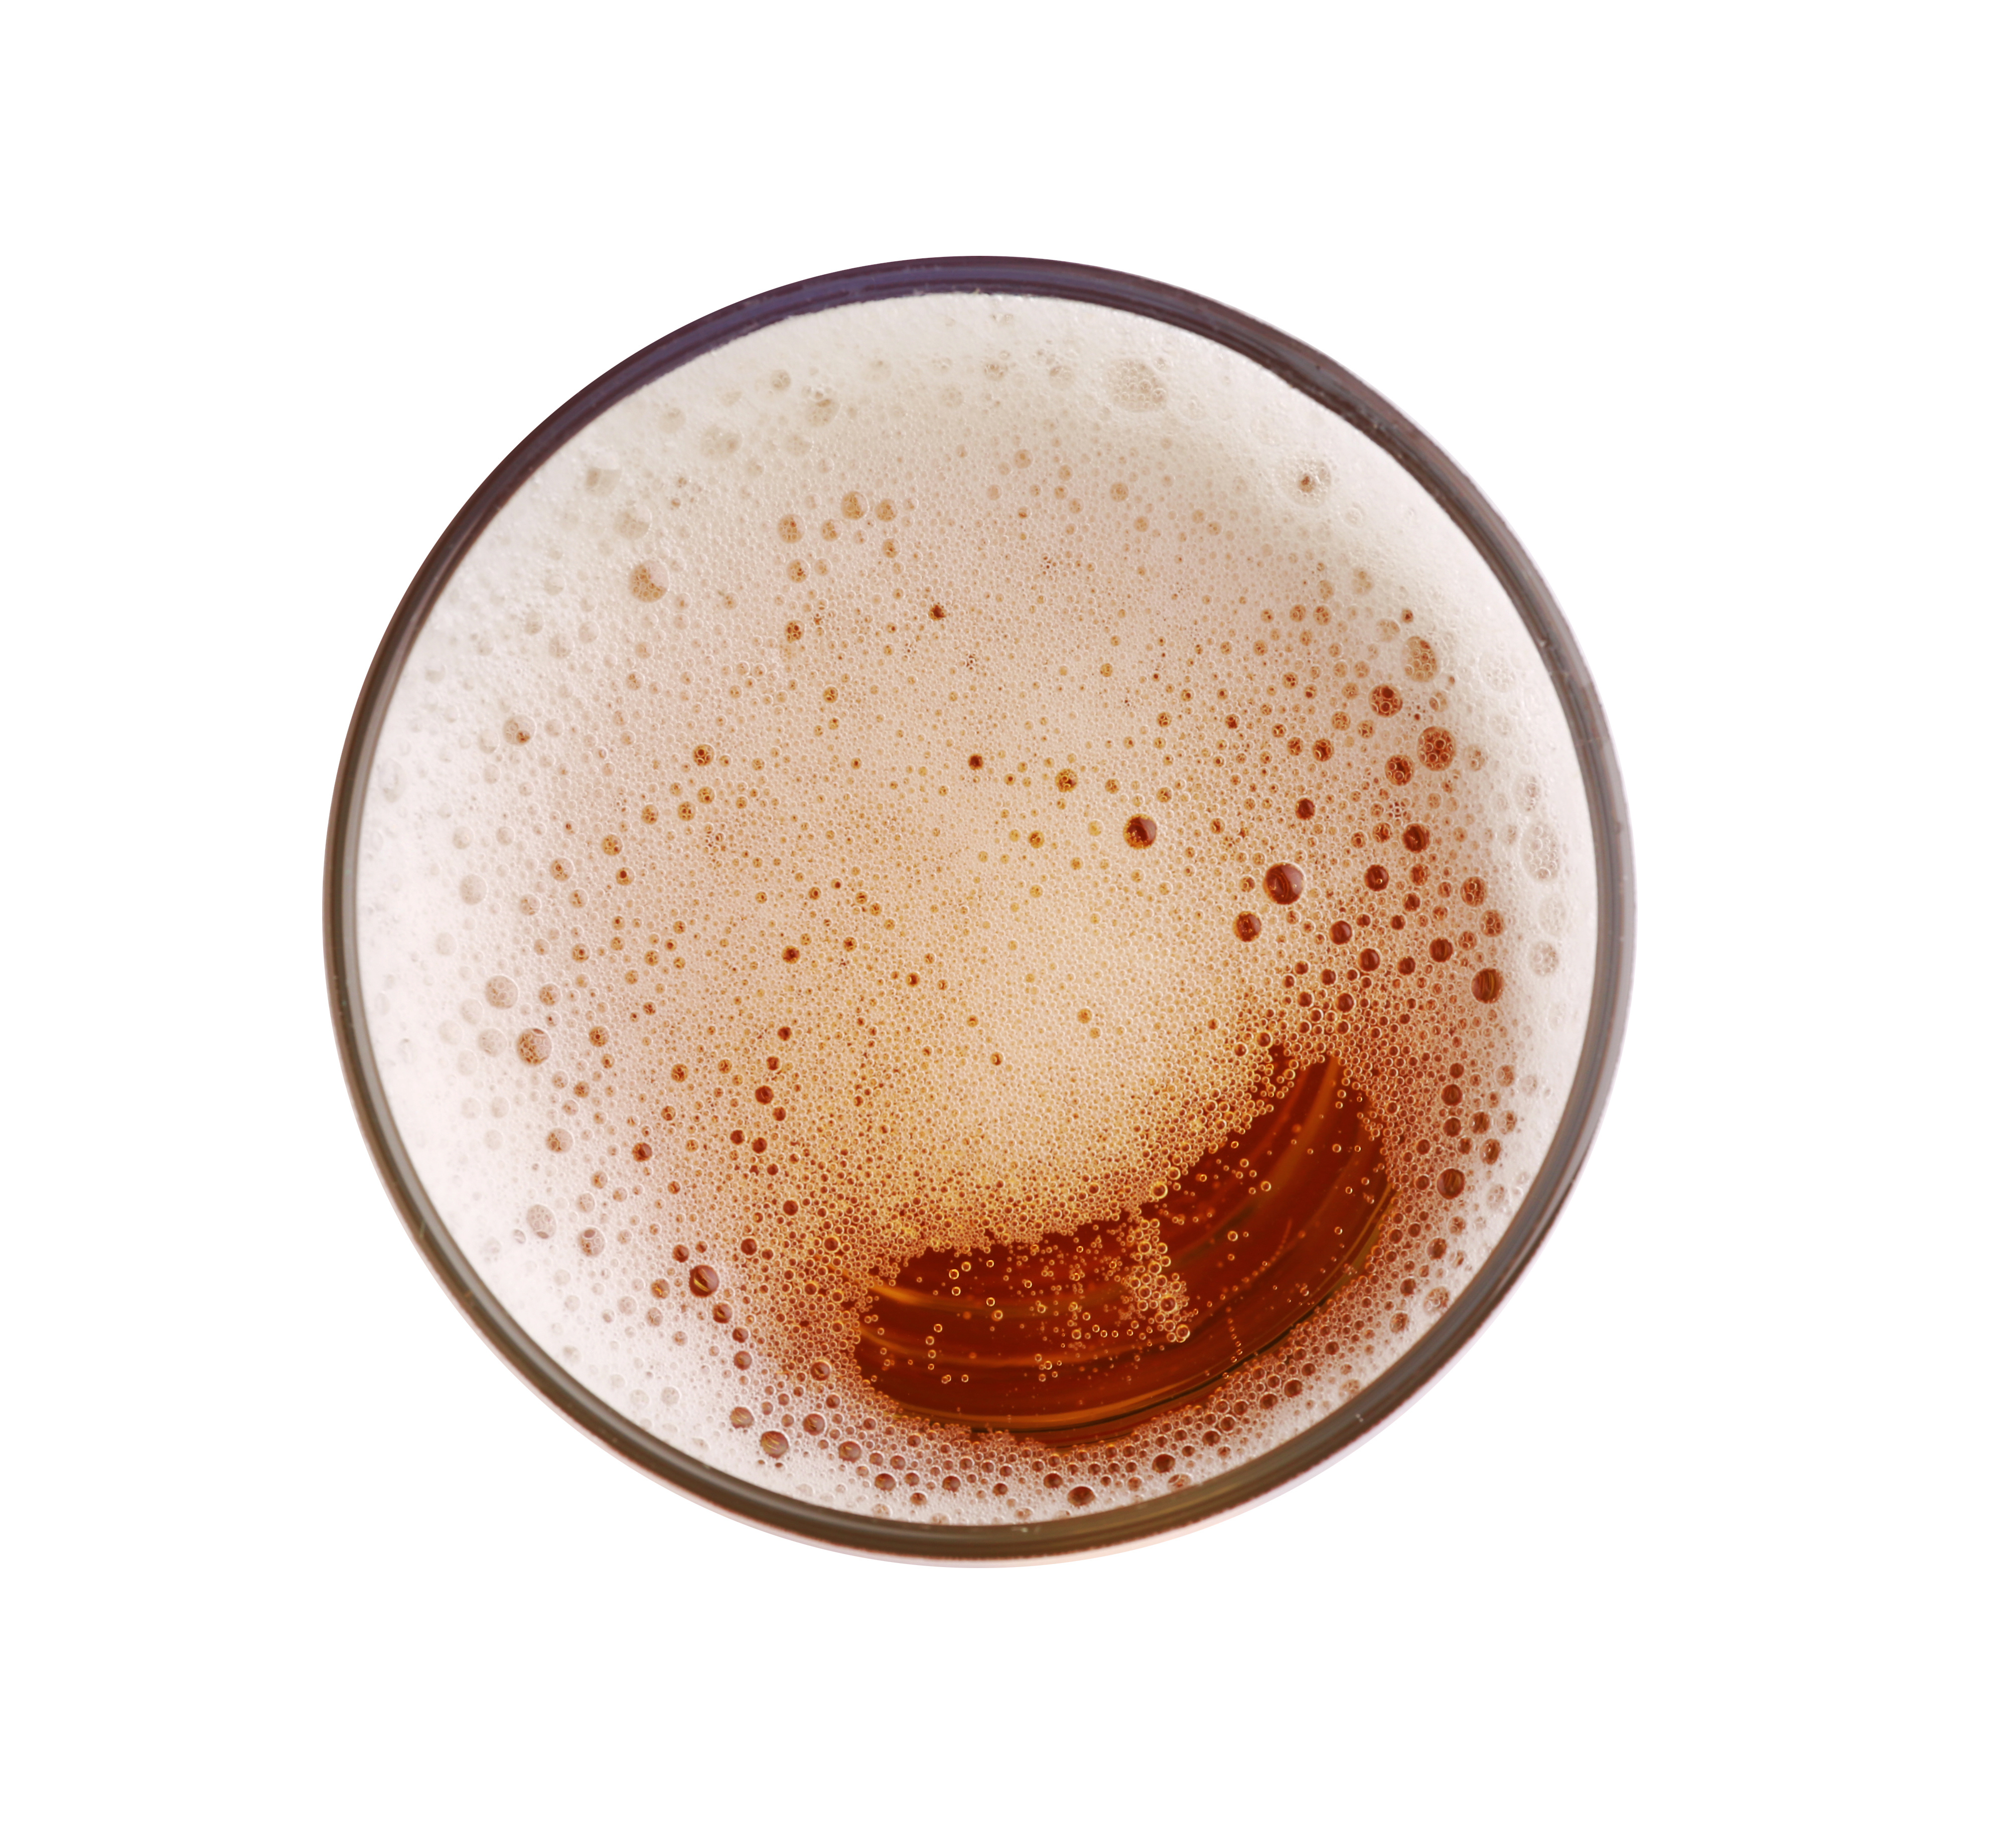 Glass of fresh beer on white background, top view